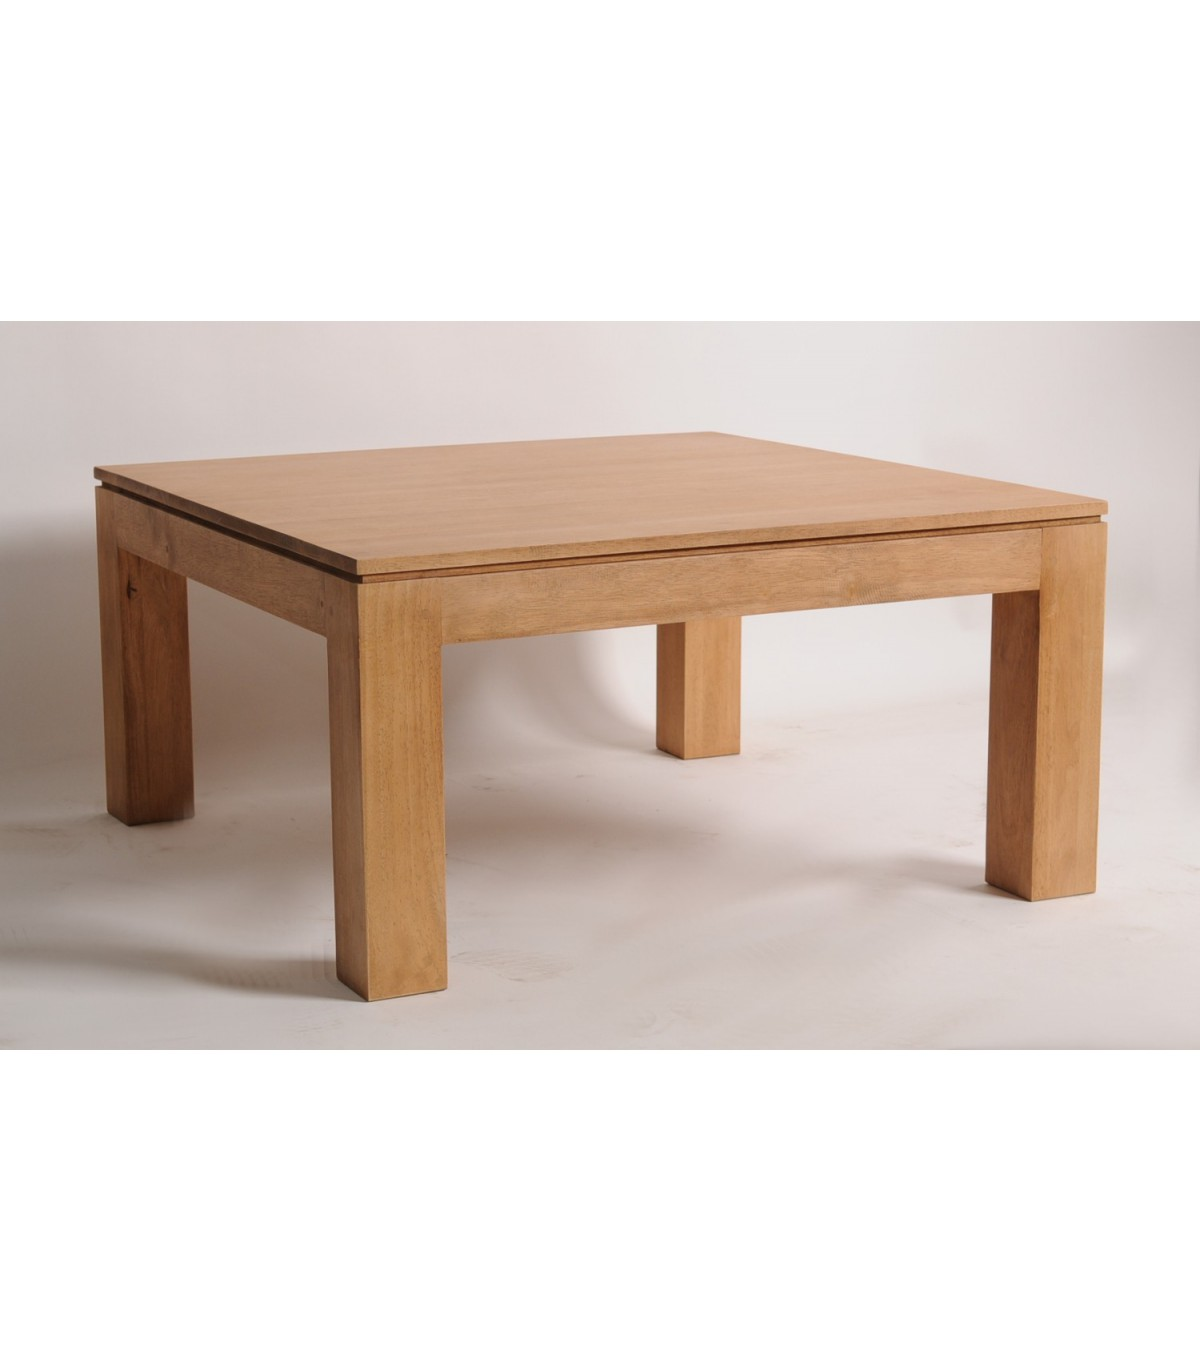 bassecarréboisMEUBLE bassecarréboisMEUBLE HEVEAnaturel table HEVEAnaturel table table HEVEAnaturel table bassecarréboisMEUBLE y67bfg